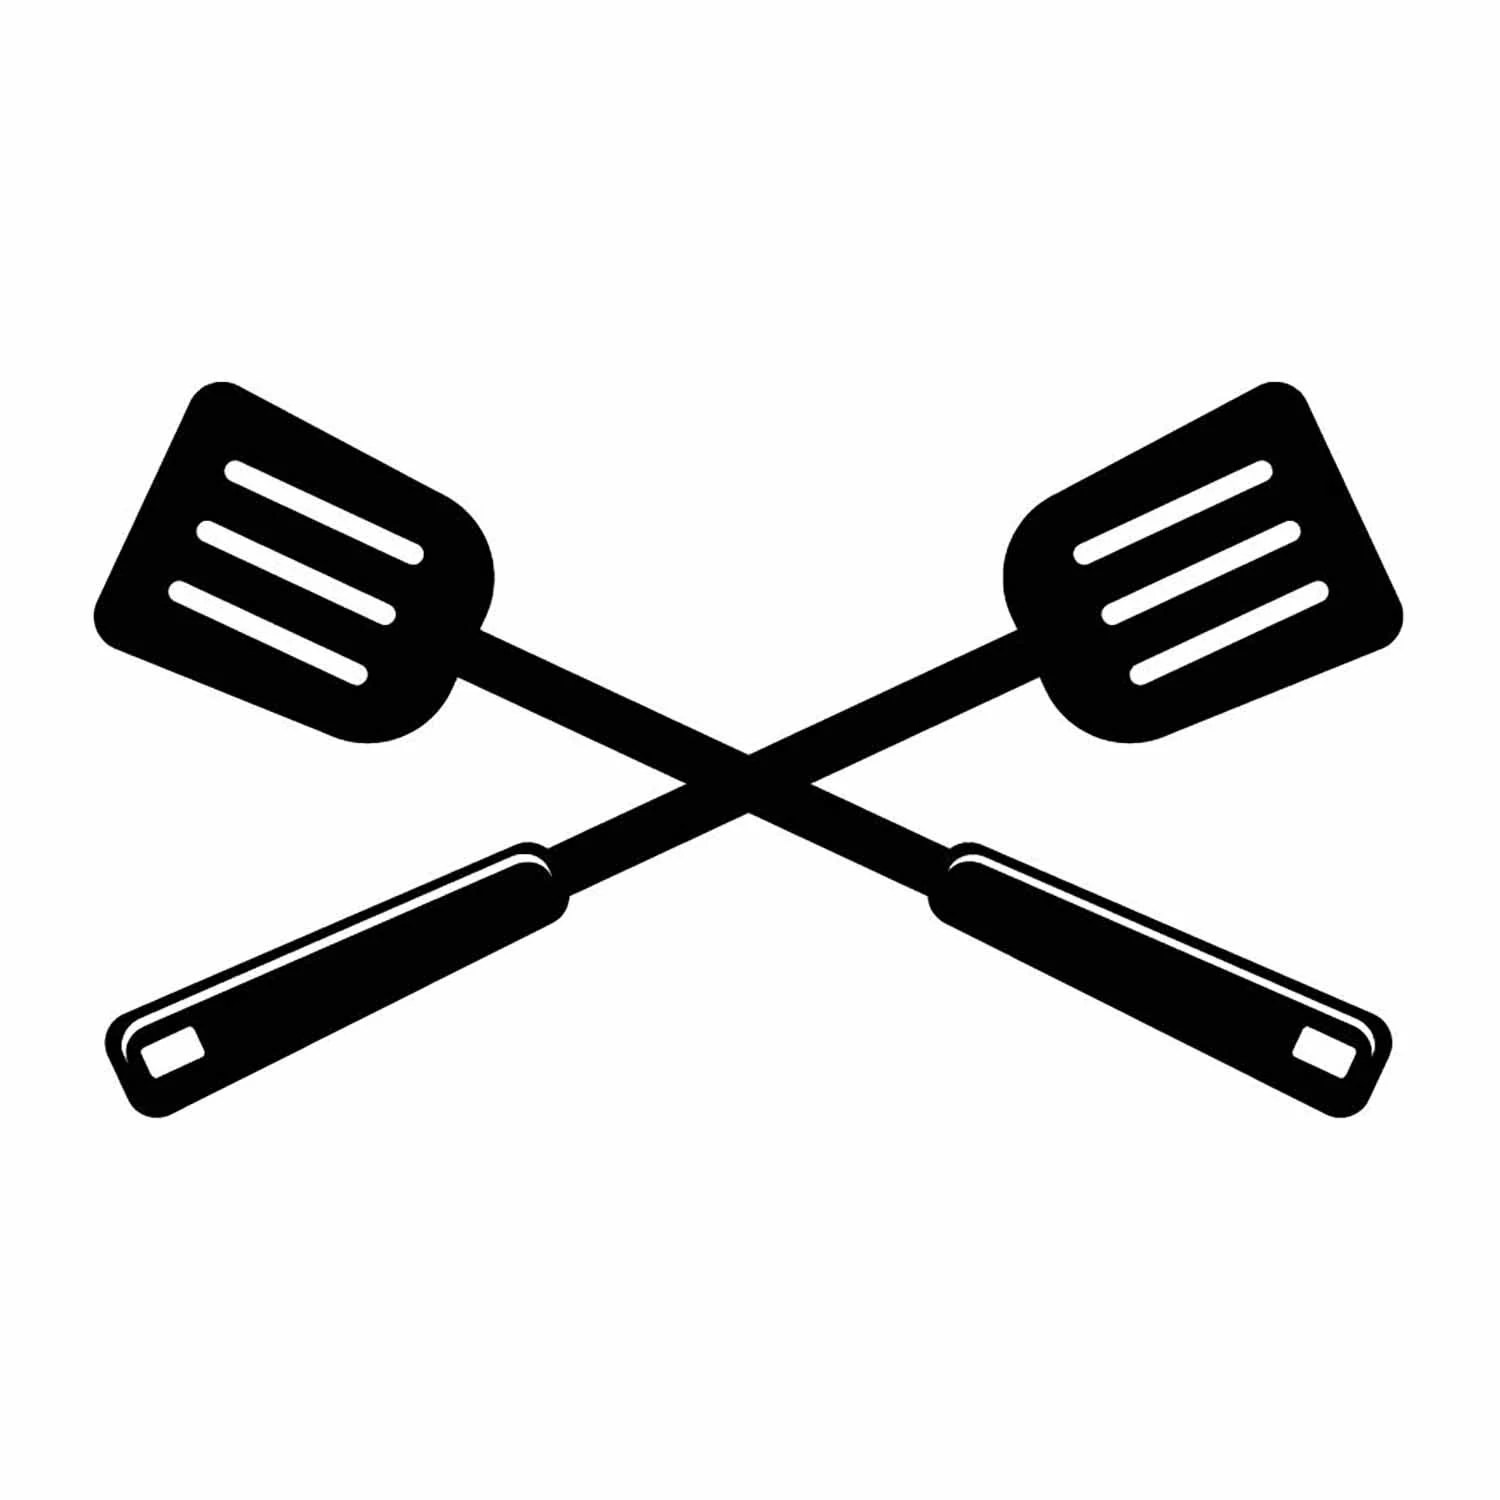 BBQ Grilling Grill spatulas Barbecue cooking 1 vector .eps